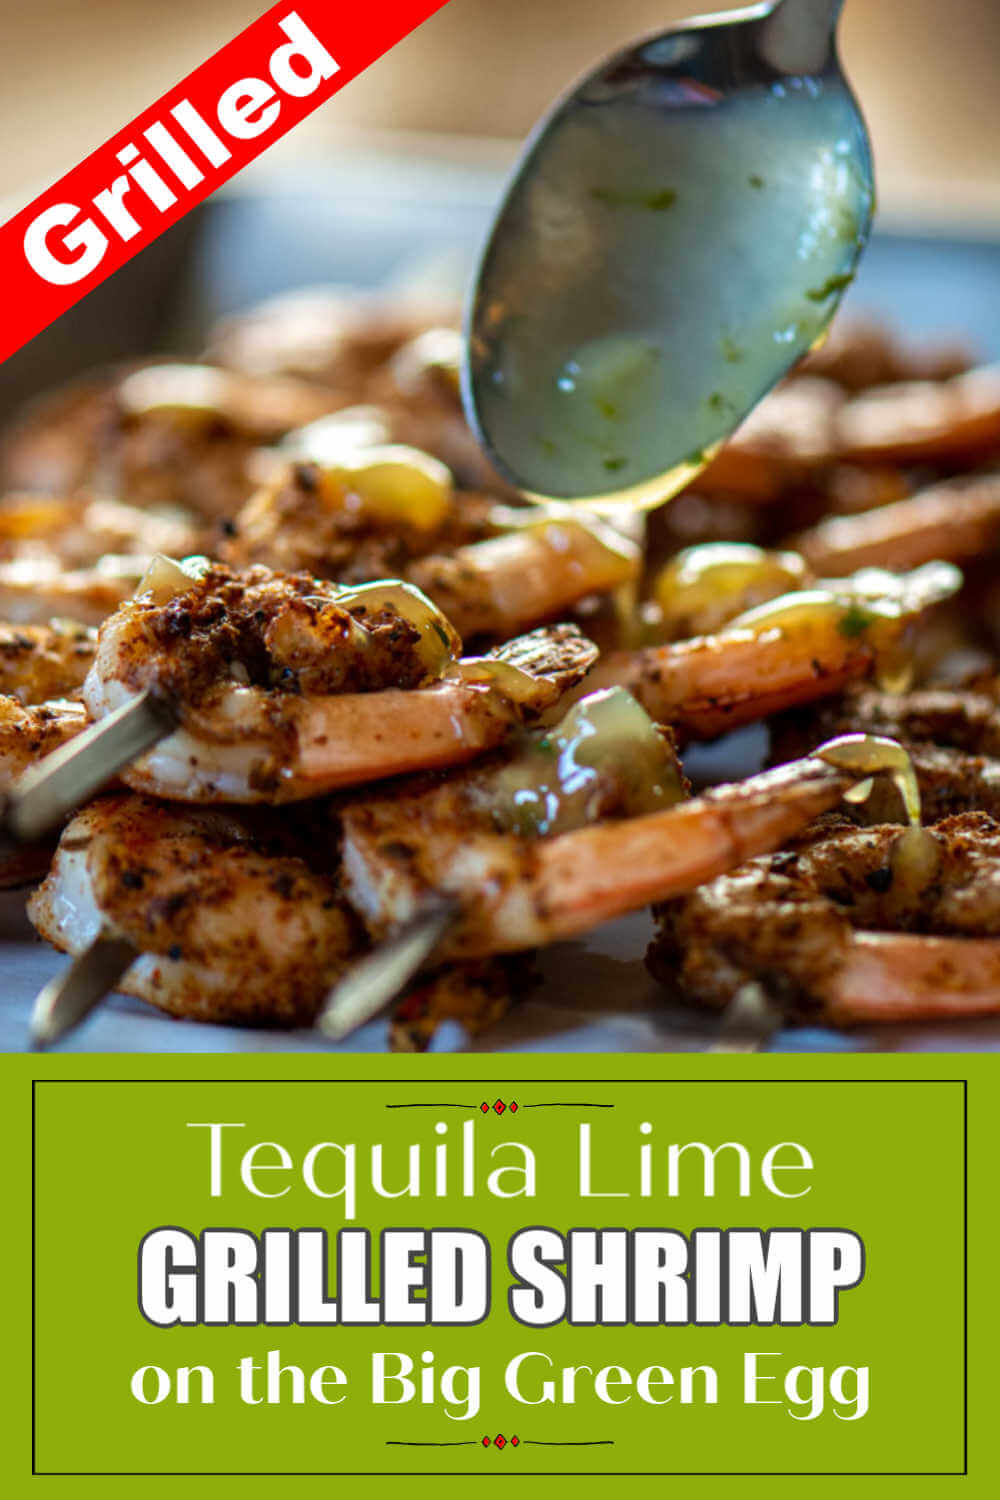 How to Grill Shrimp on a Salt Block - Tequila Lime Shrimp